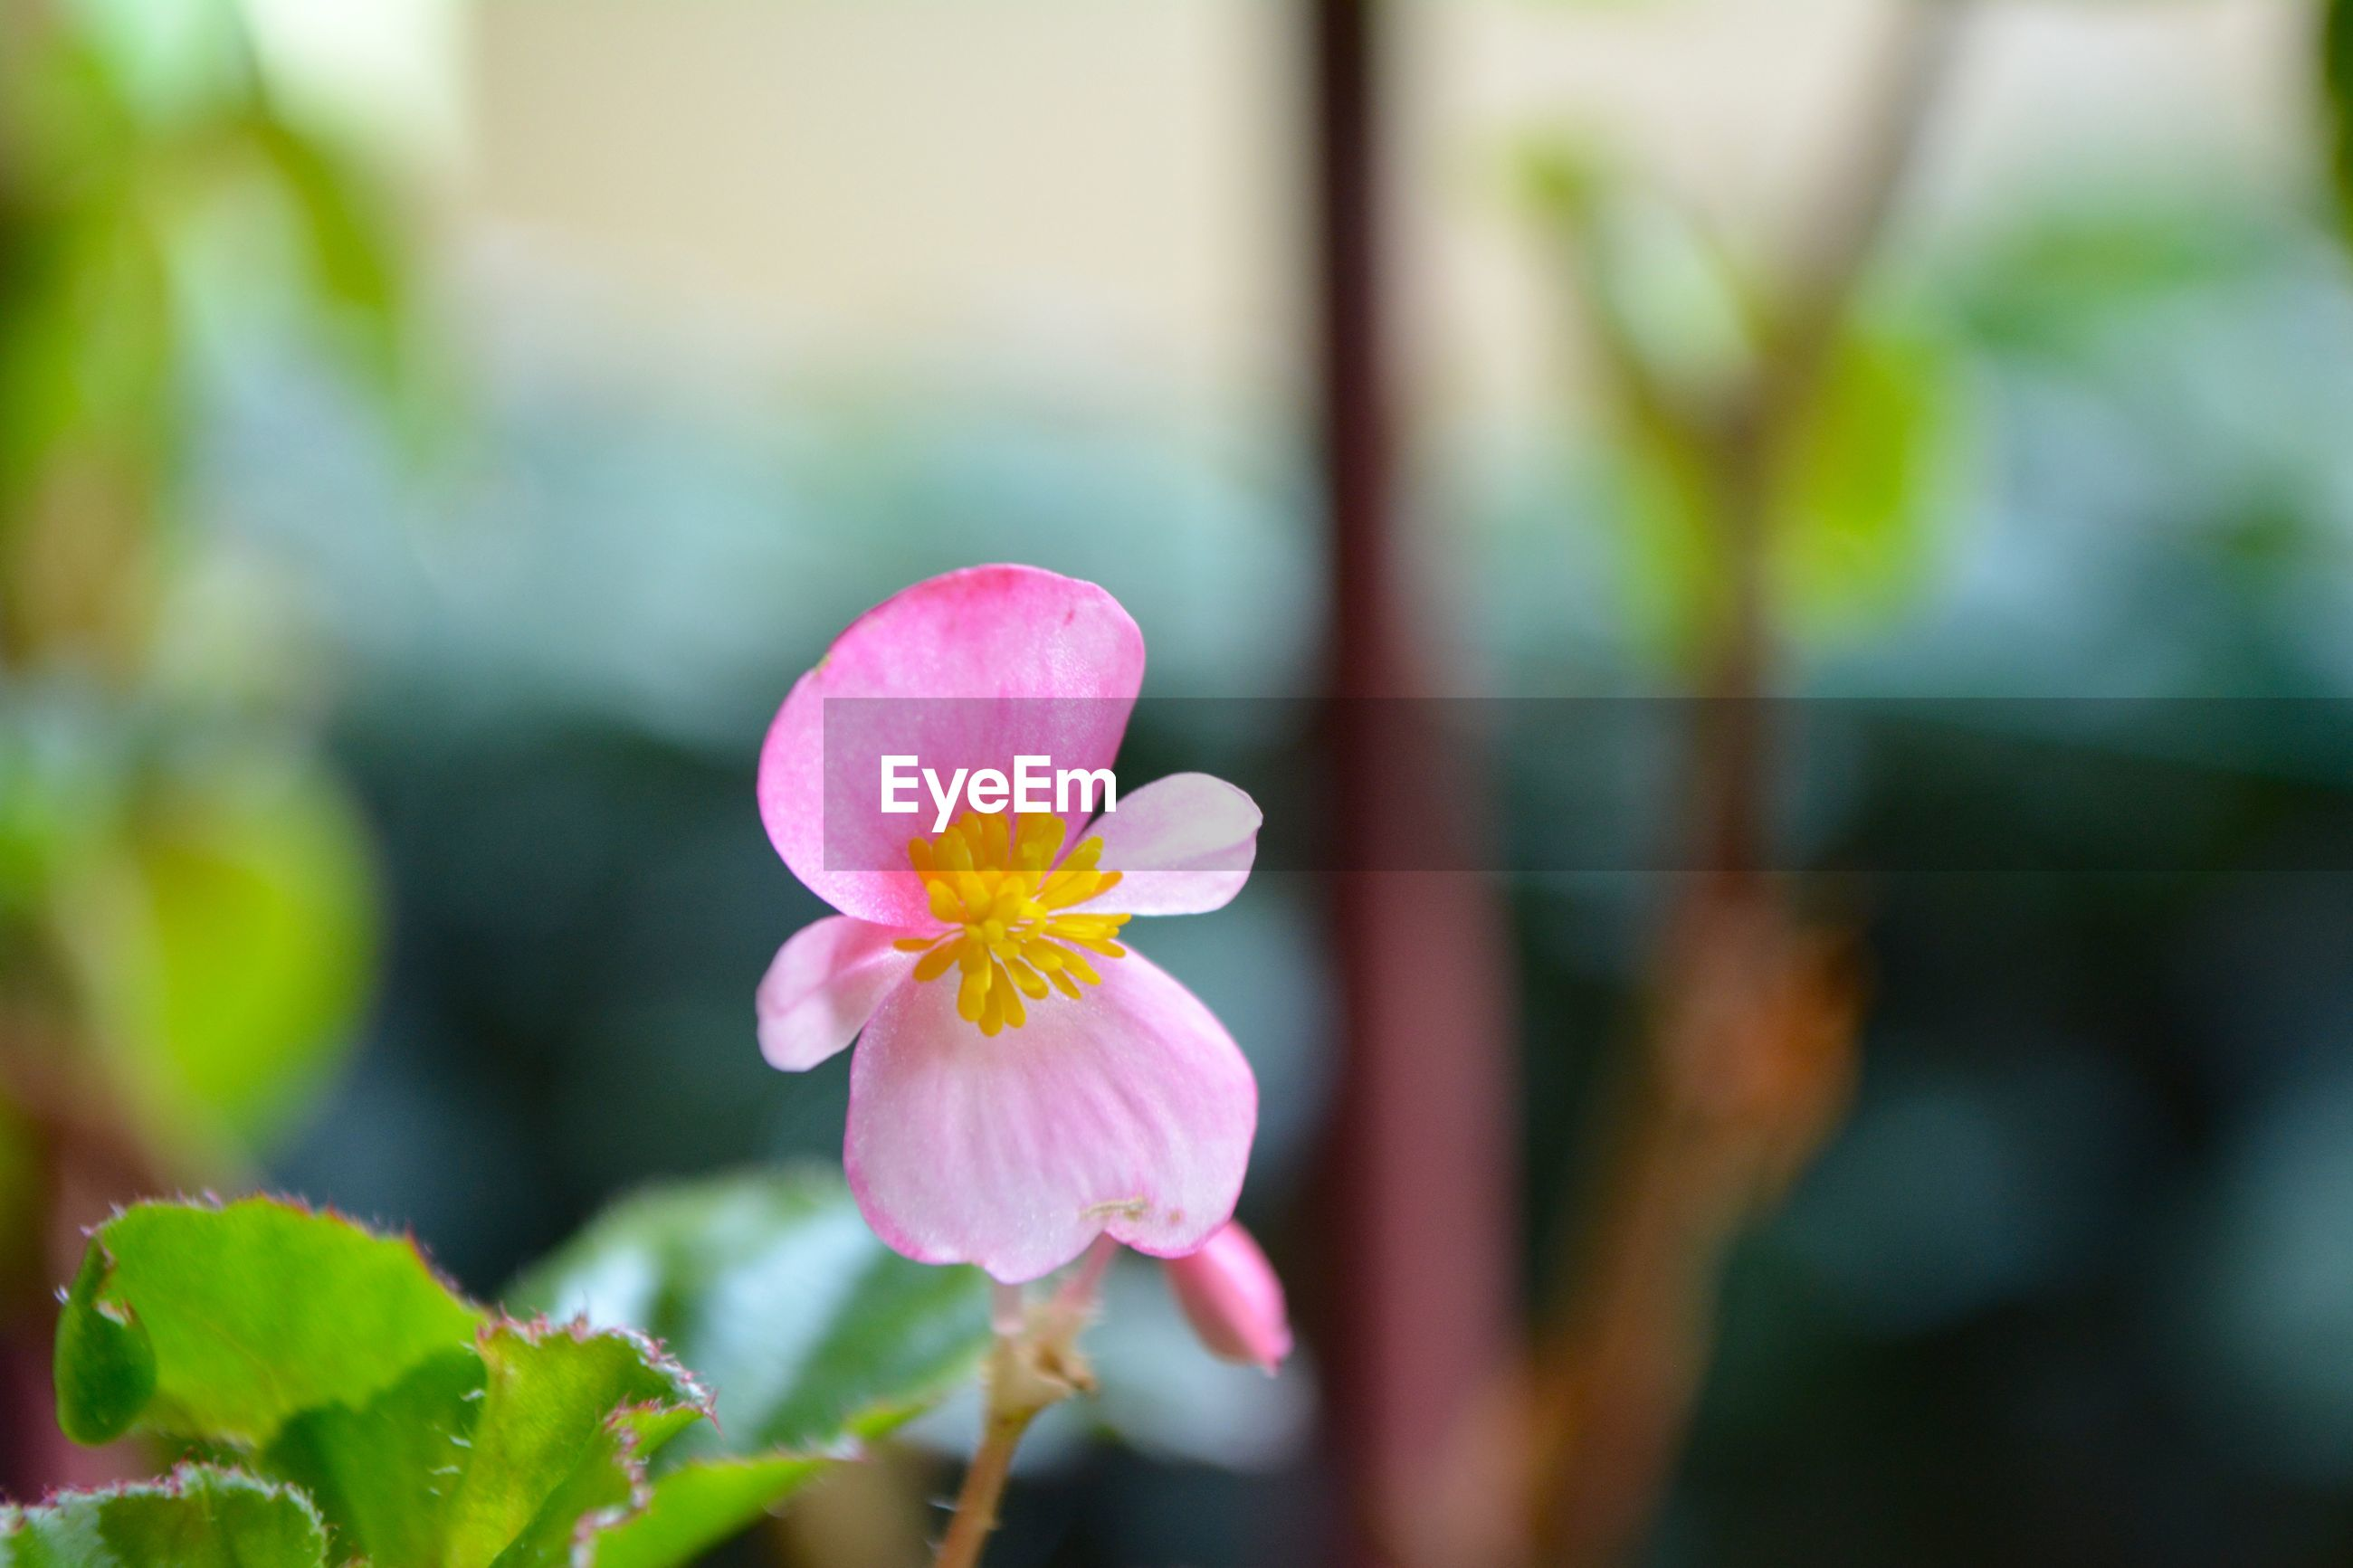 CLOSE-UP OF PINK FLOWER AGAINST PLANTS